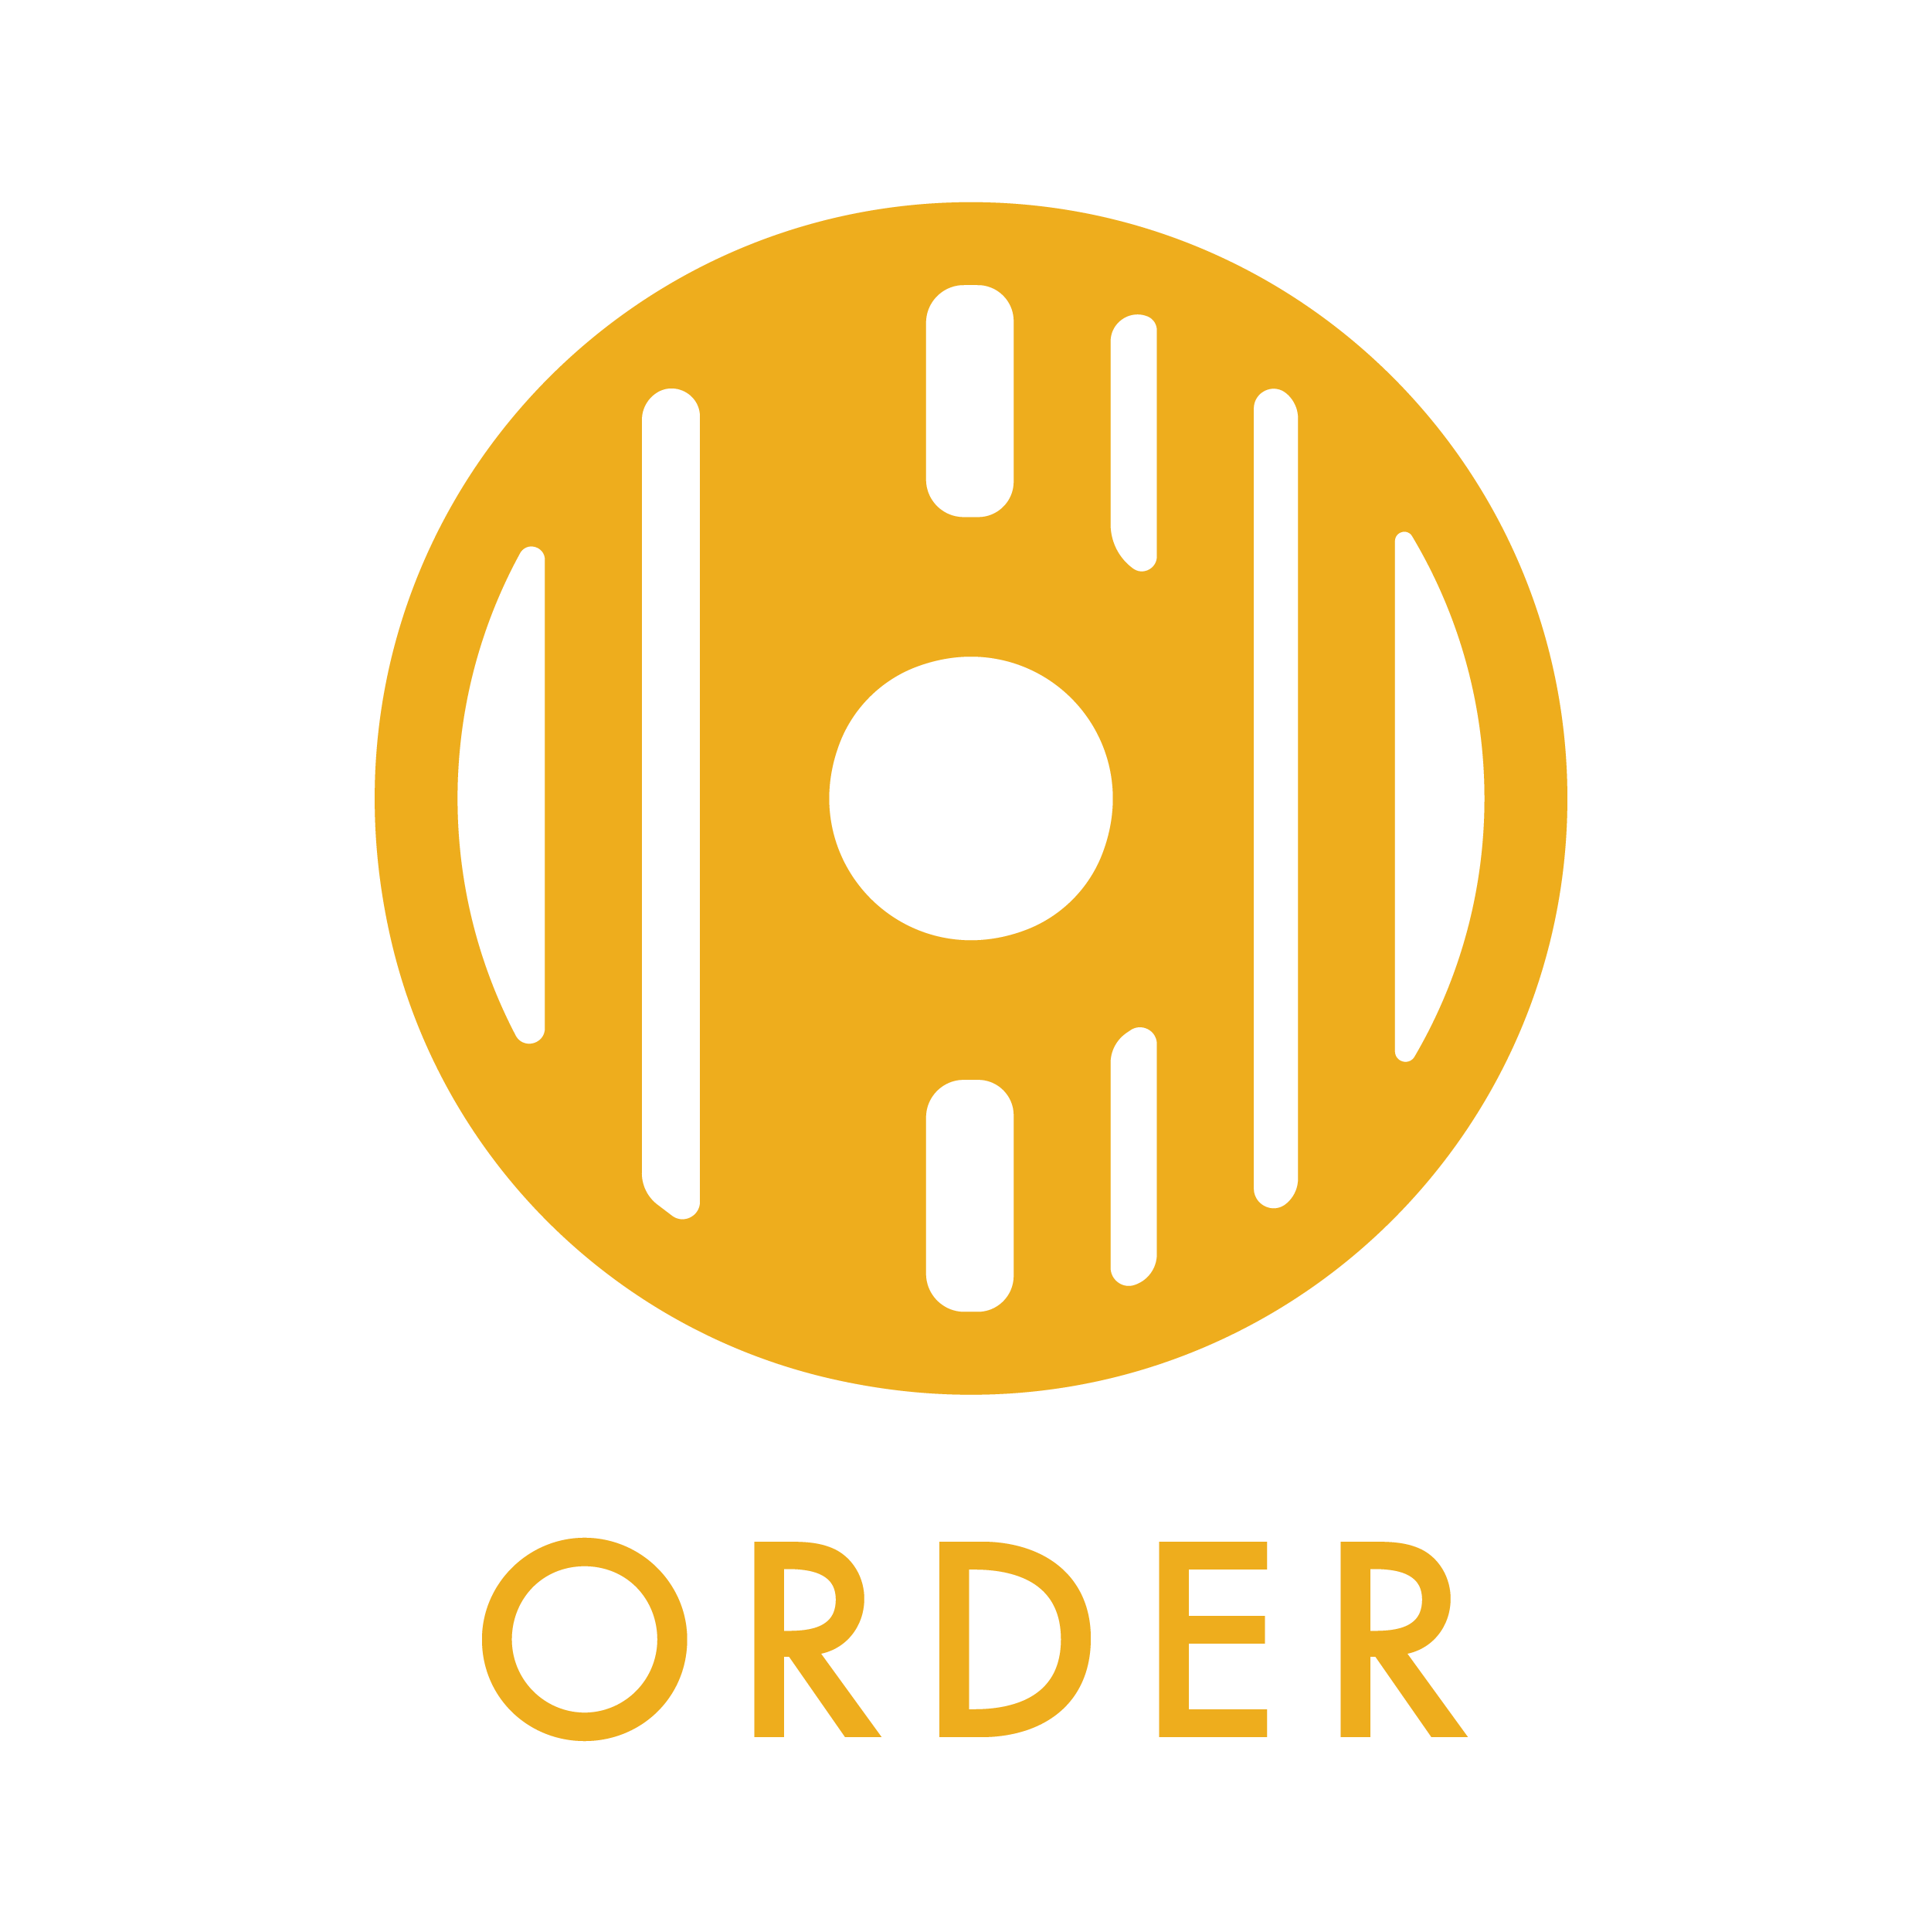 Order ONeil Product Icons